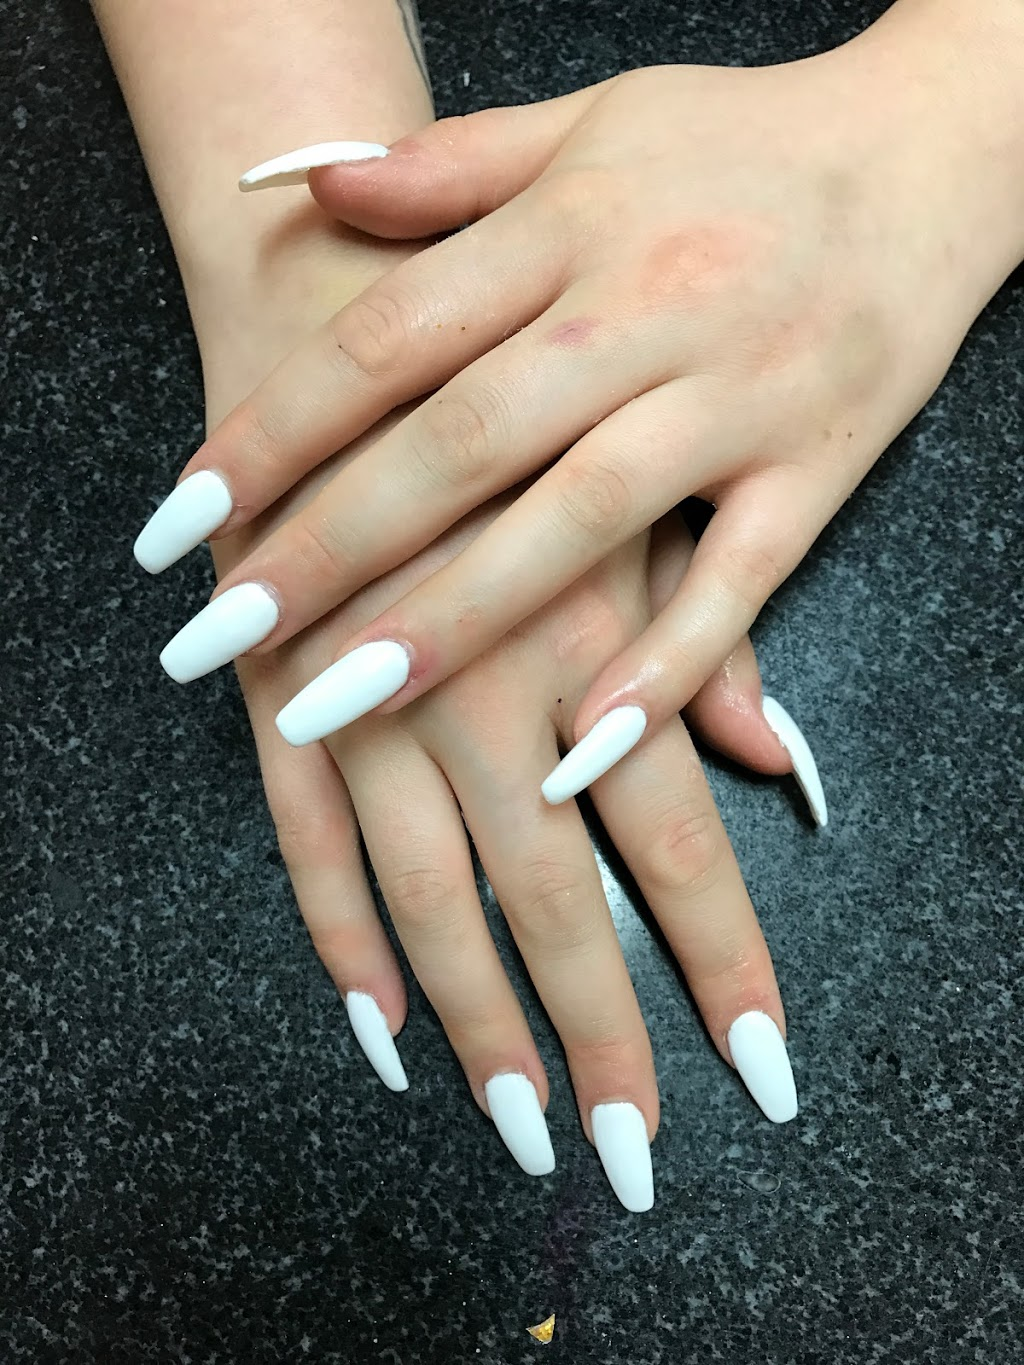 Creative Nail & Spa | spa | Unit 9 - 725 Corydon Avenue, Winnipeg, MB R3M 0W4, Canada | 2045041191 OR +1 204-504-1191